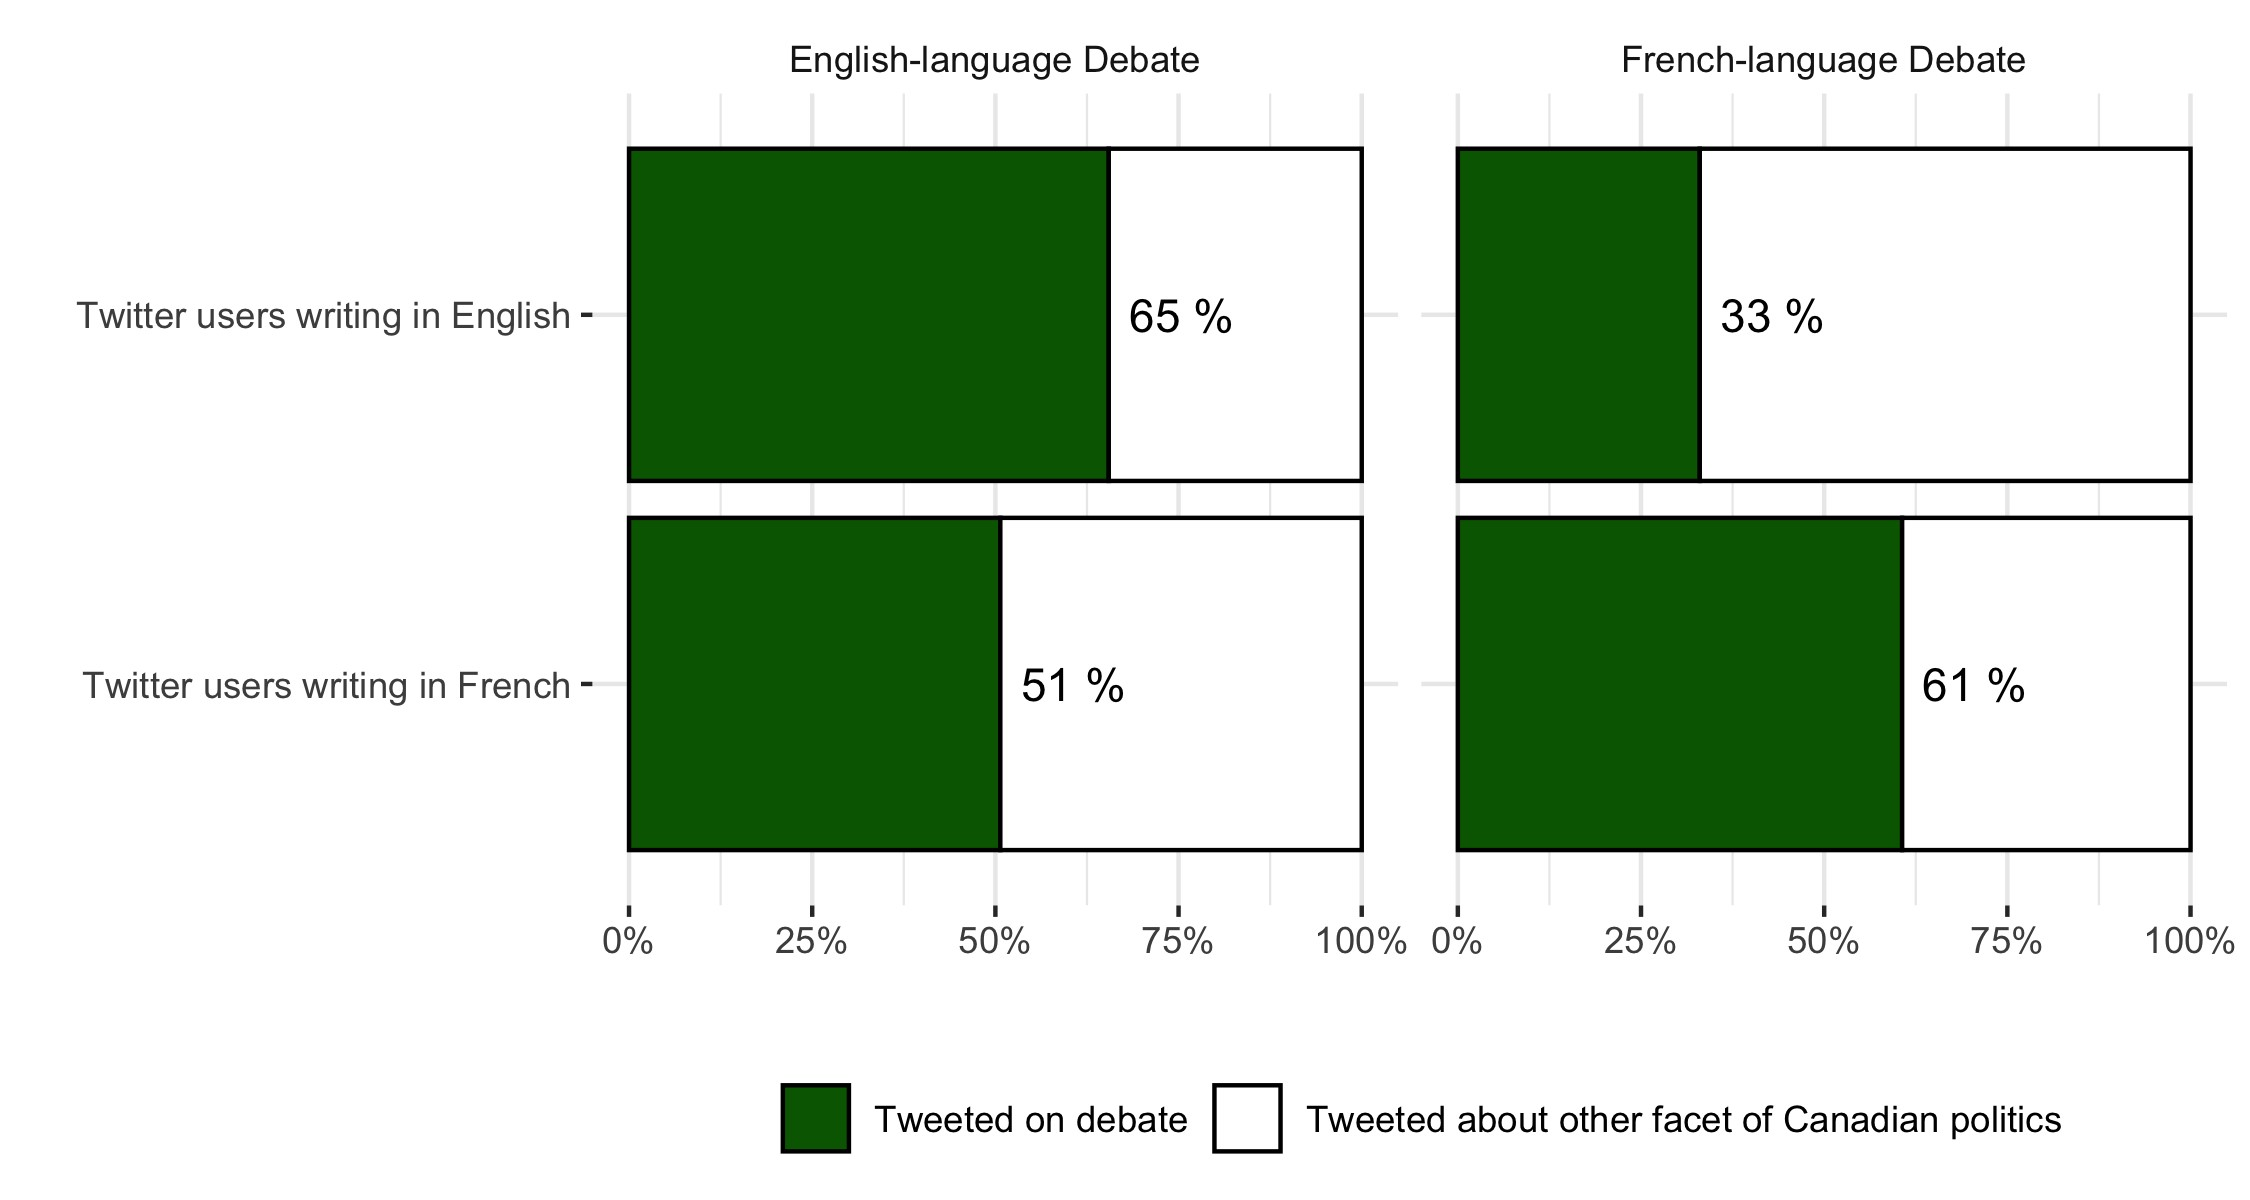 Figure 2: Debate-related Twitter activity during English-language debate